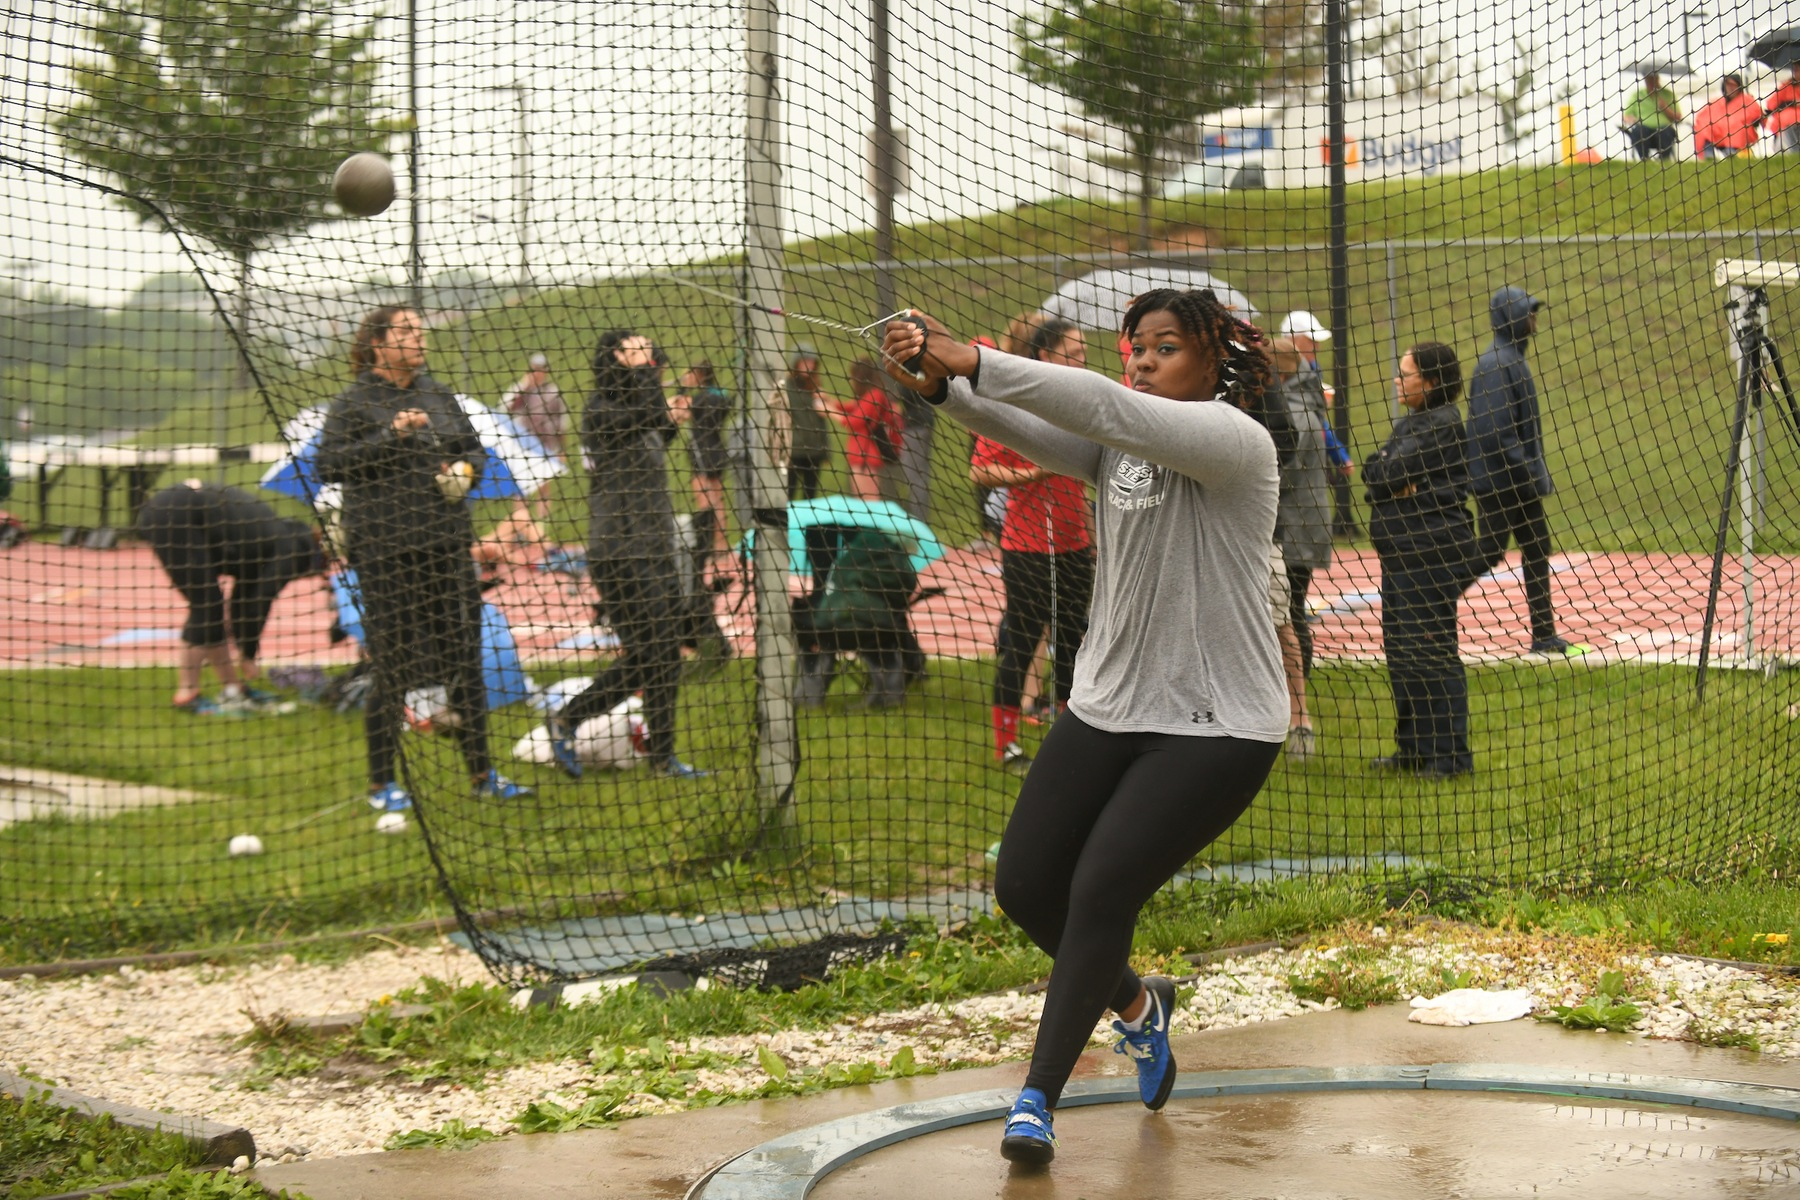 Bishop Sets School Record in Weight Throw, Hammond Takes Second in Long Jump at Bison Open